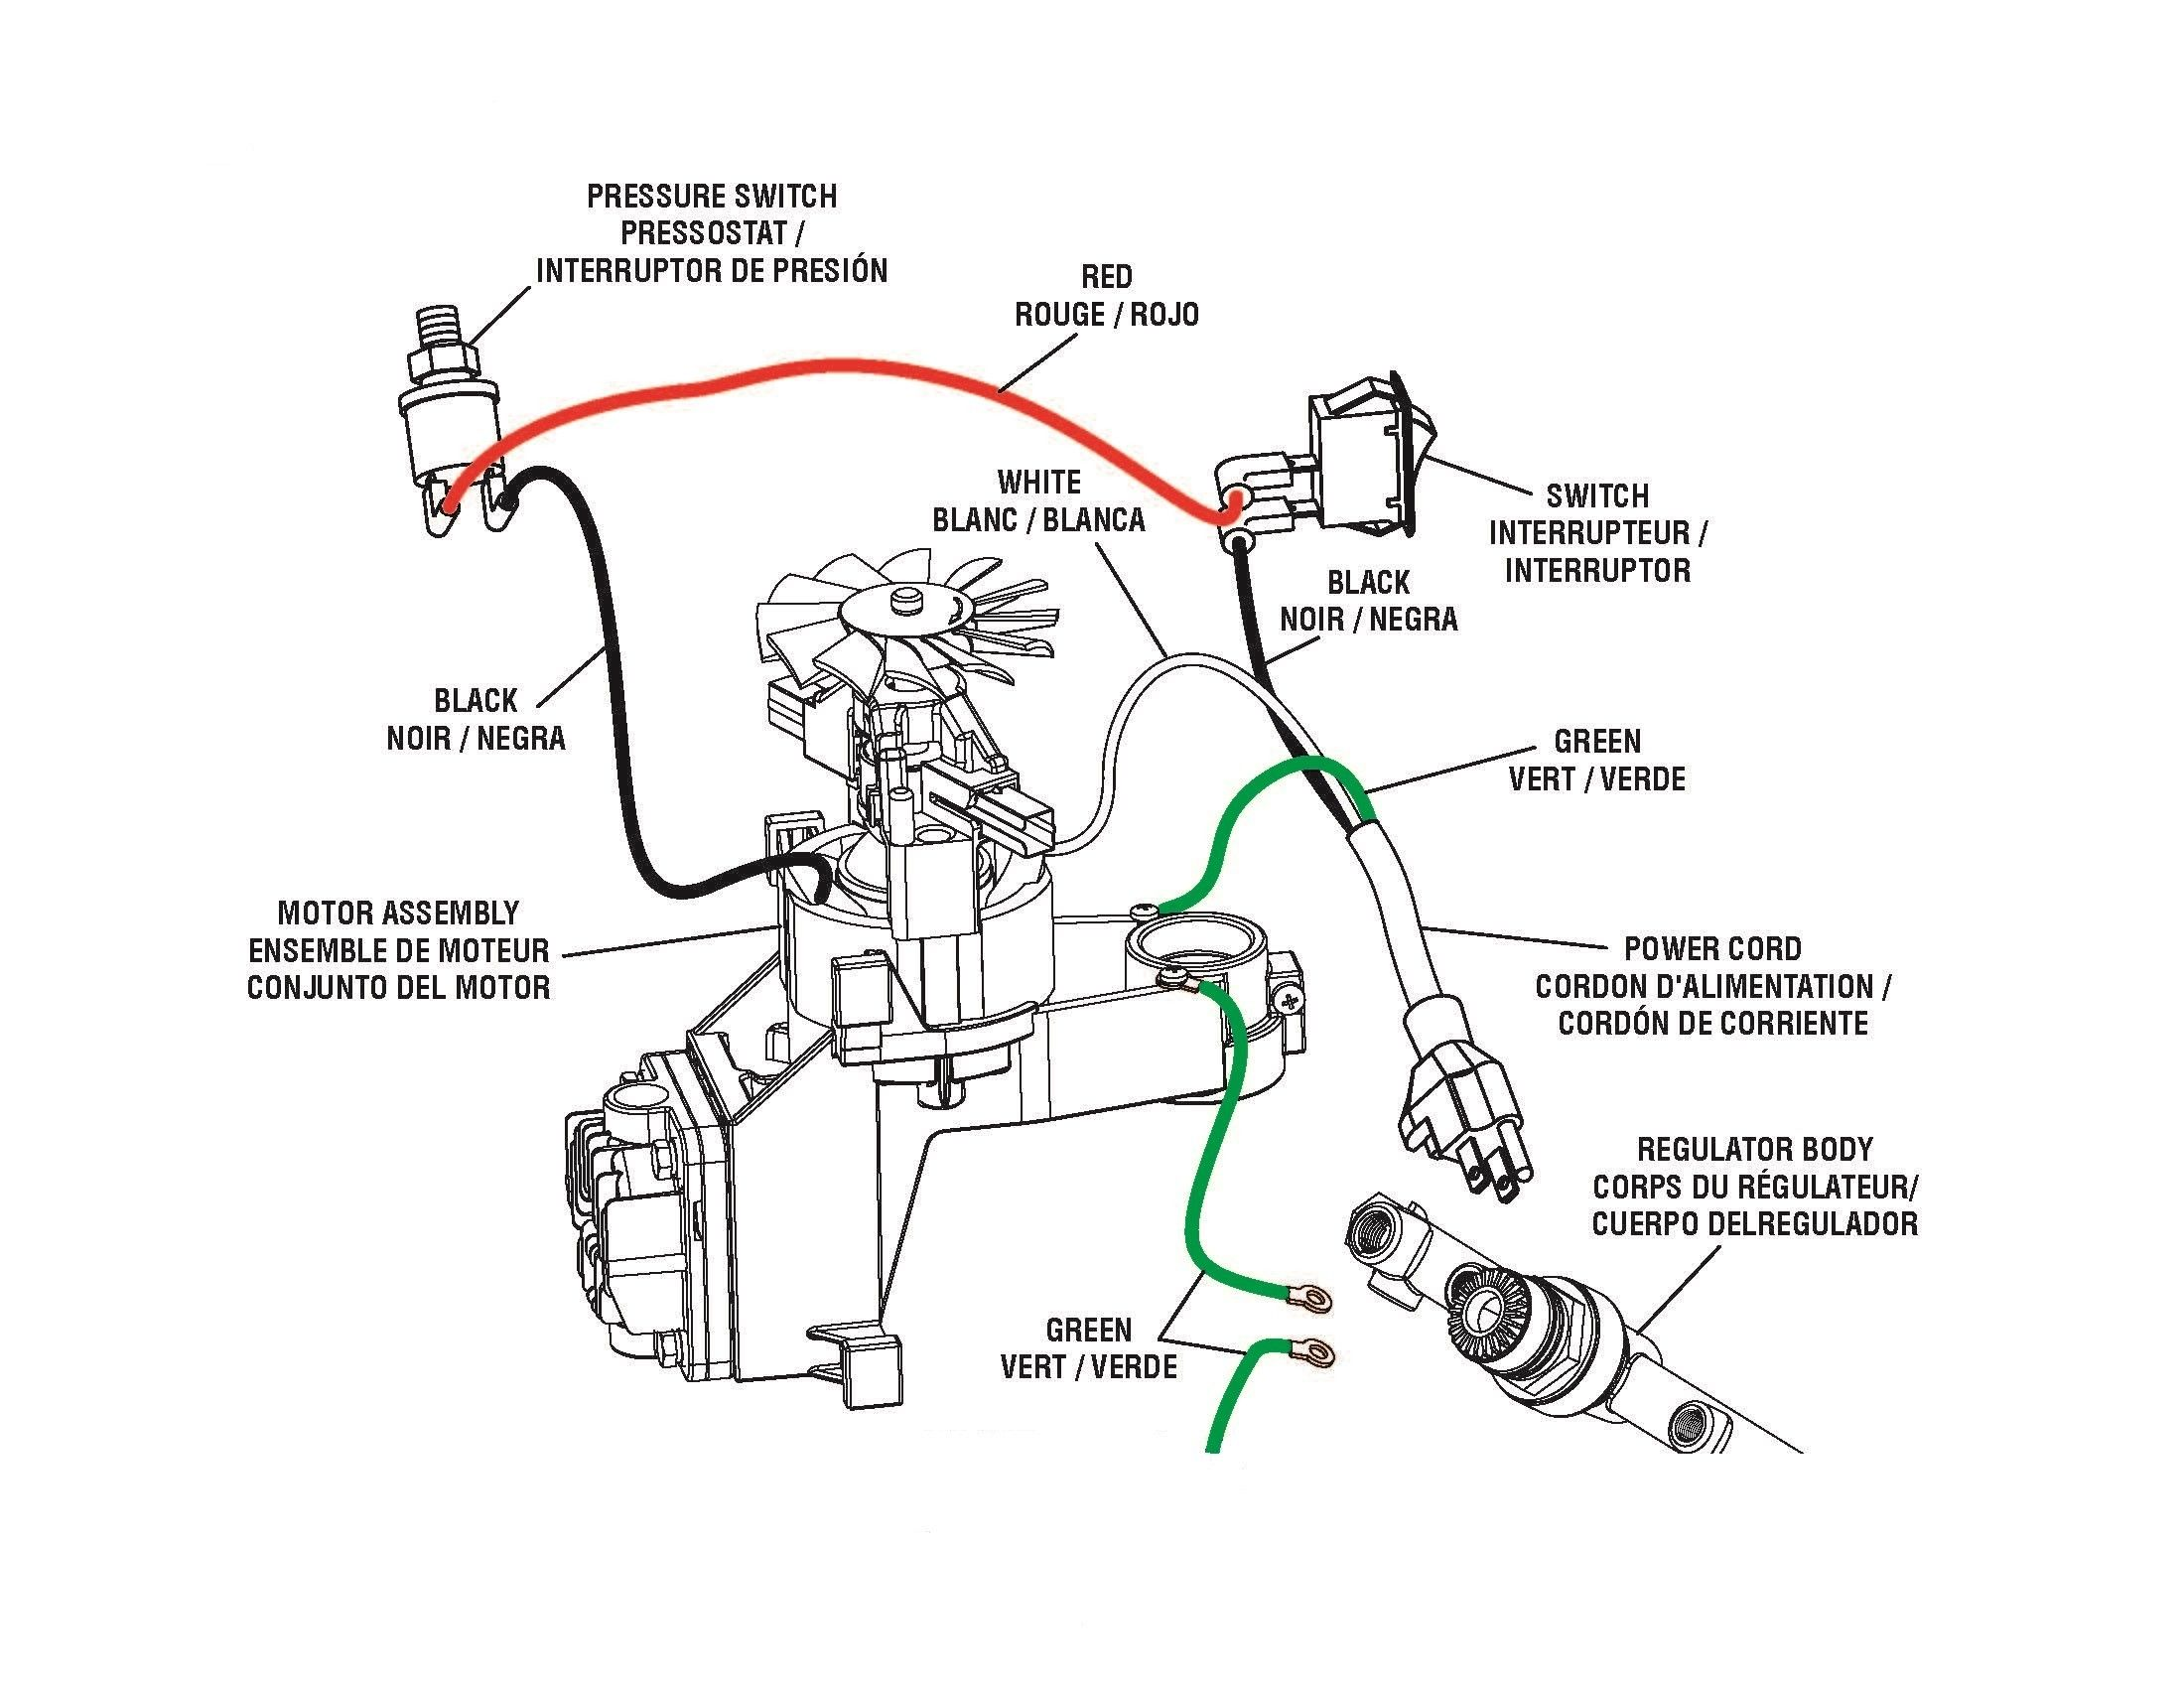 Unique Wiring Diagram For Air Compressor Pressure Switch Air Compressor Pressure Switch Air Compressor Compressor